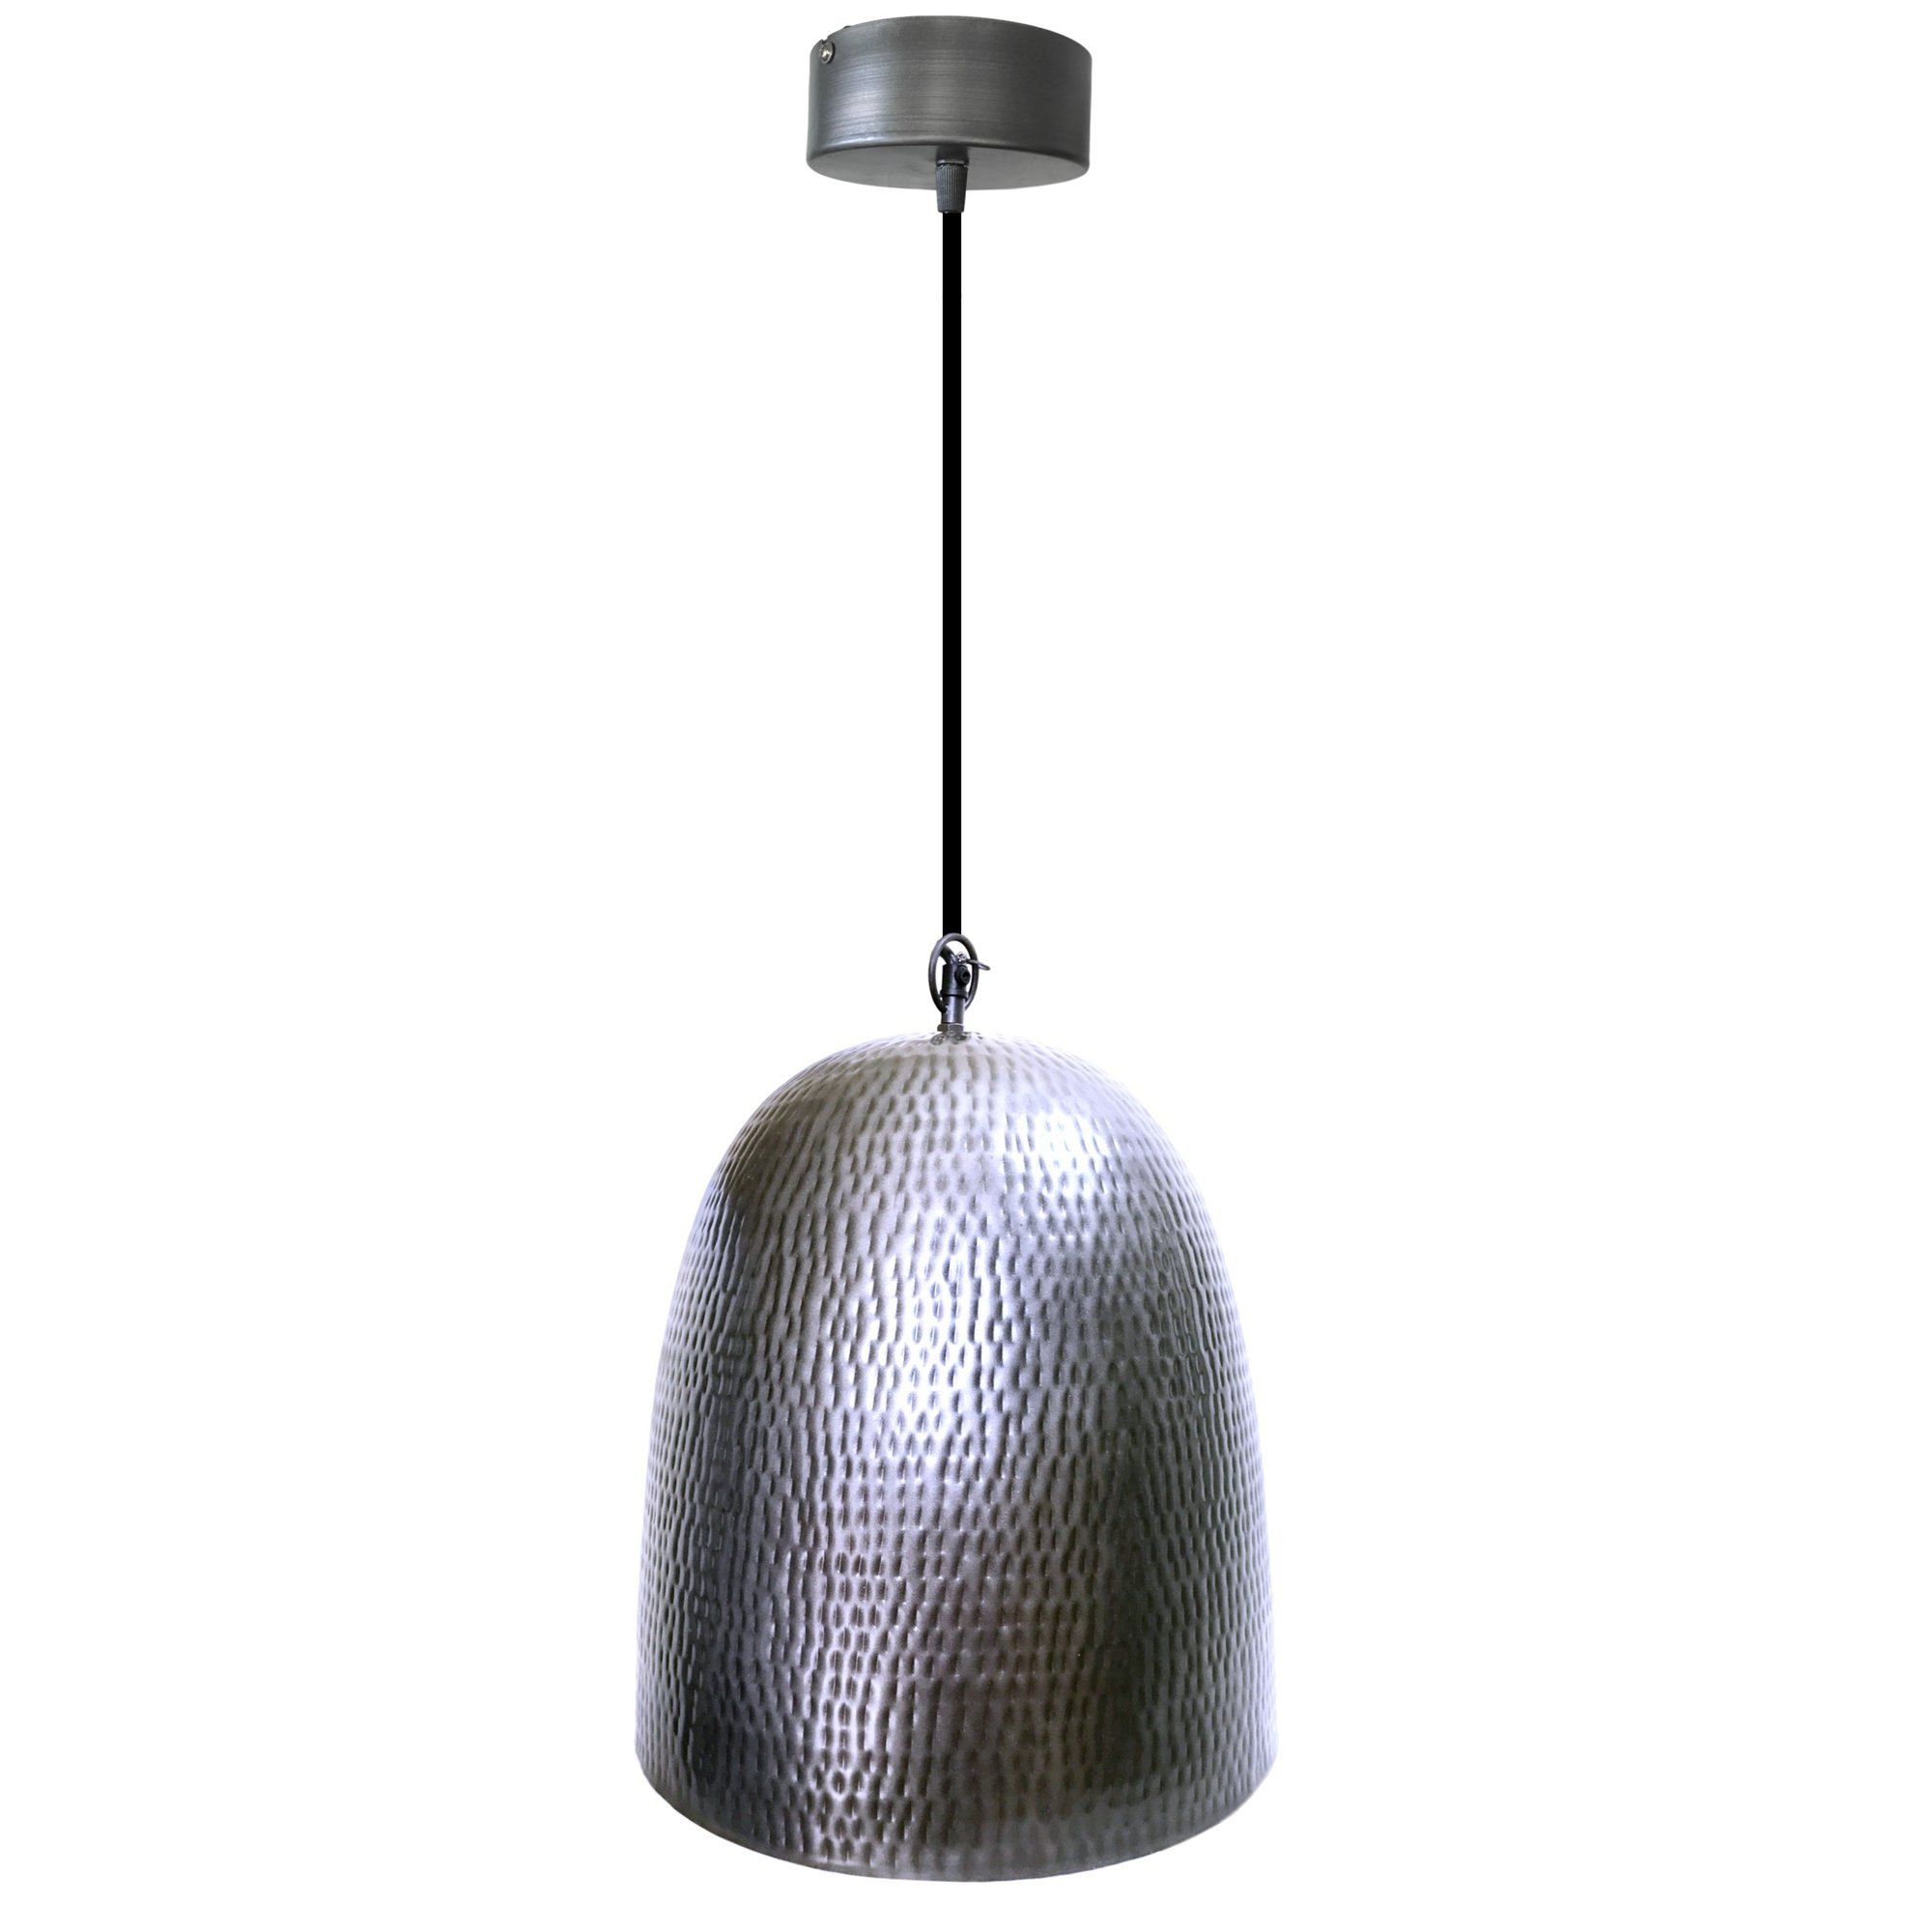 Silver Hammered Ceiling Pendant Light   1 Light, 15'' Rustic Style Fixture by Kauri Design